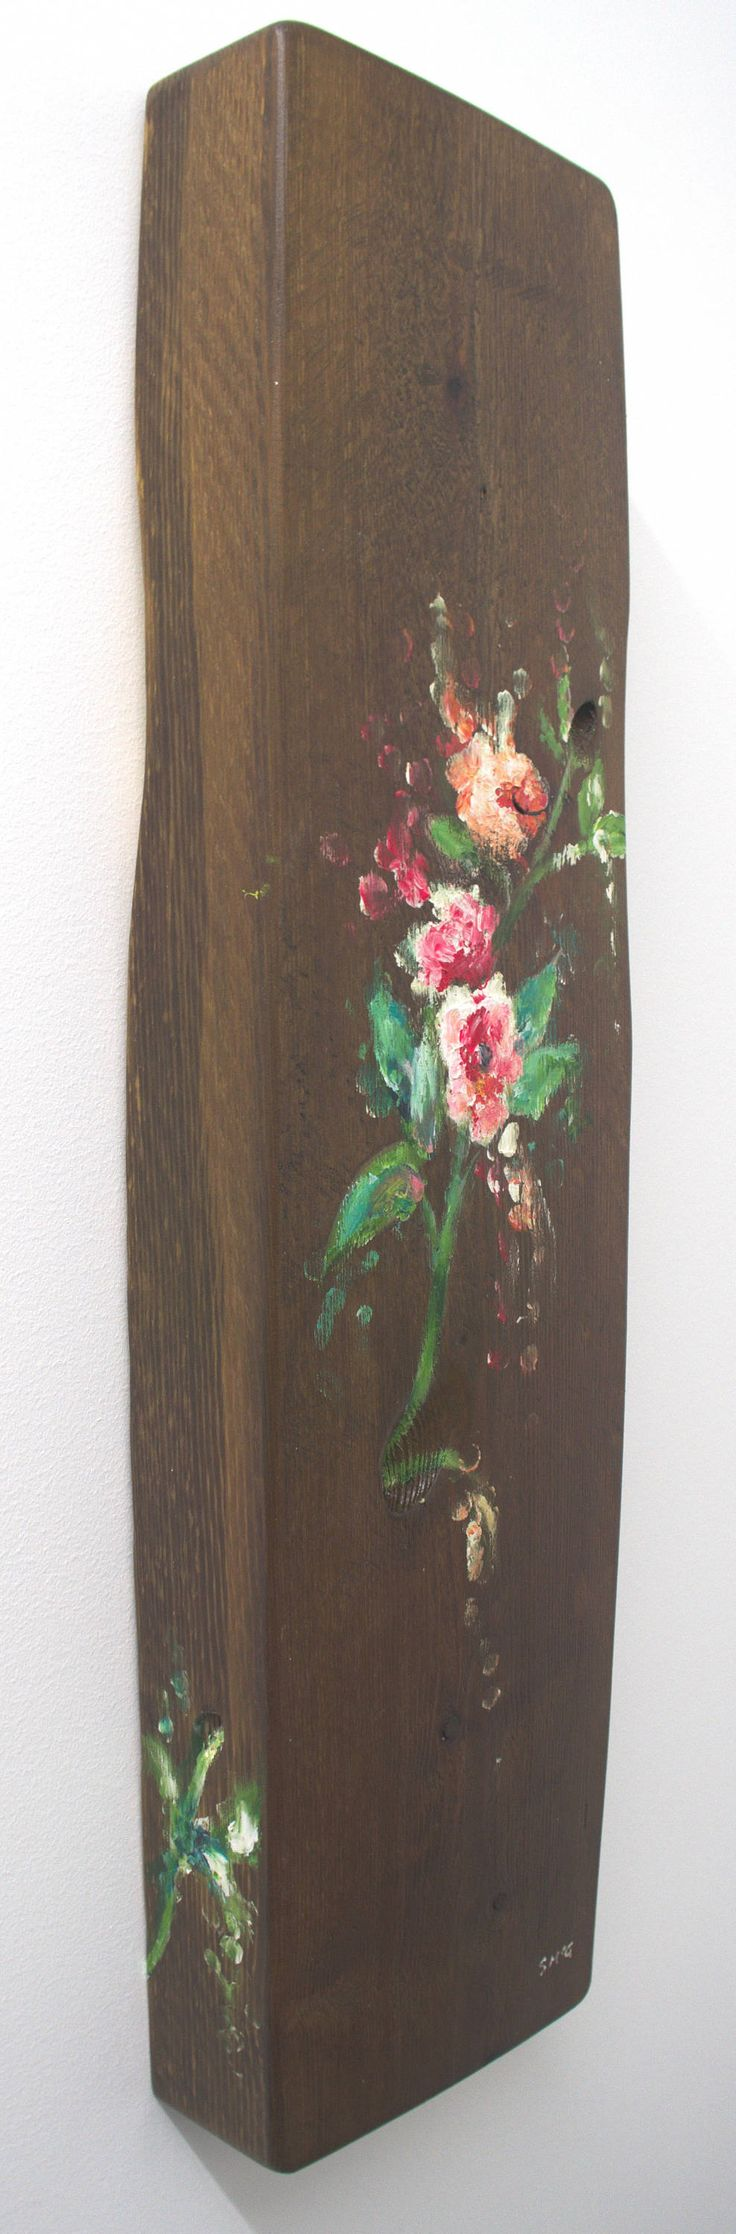 Original art on wood flowers three dimensional abstact impressionist pinks greens yellows reds dark wood art decor wall acrylic rustic art by Paintzstudio on Etsy